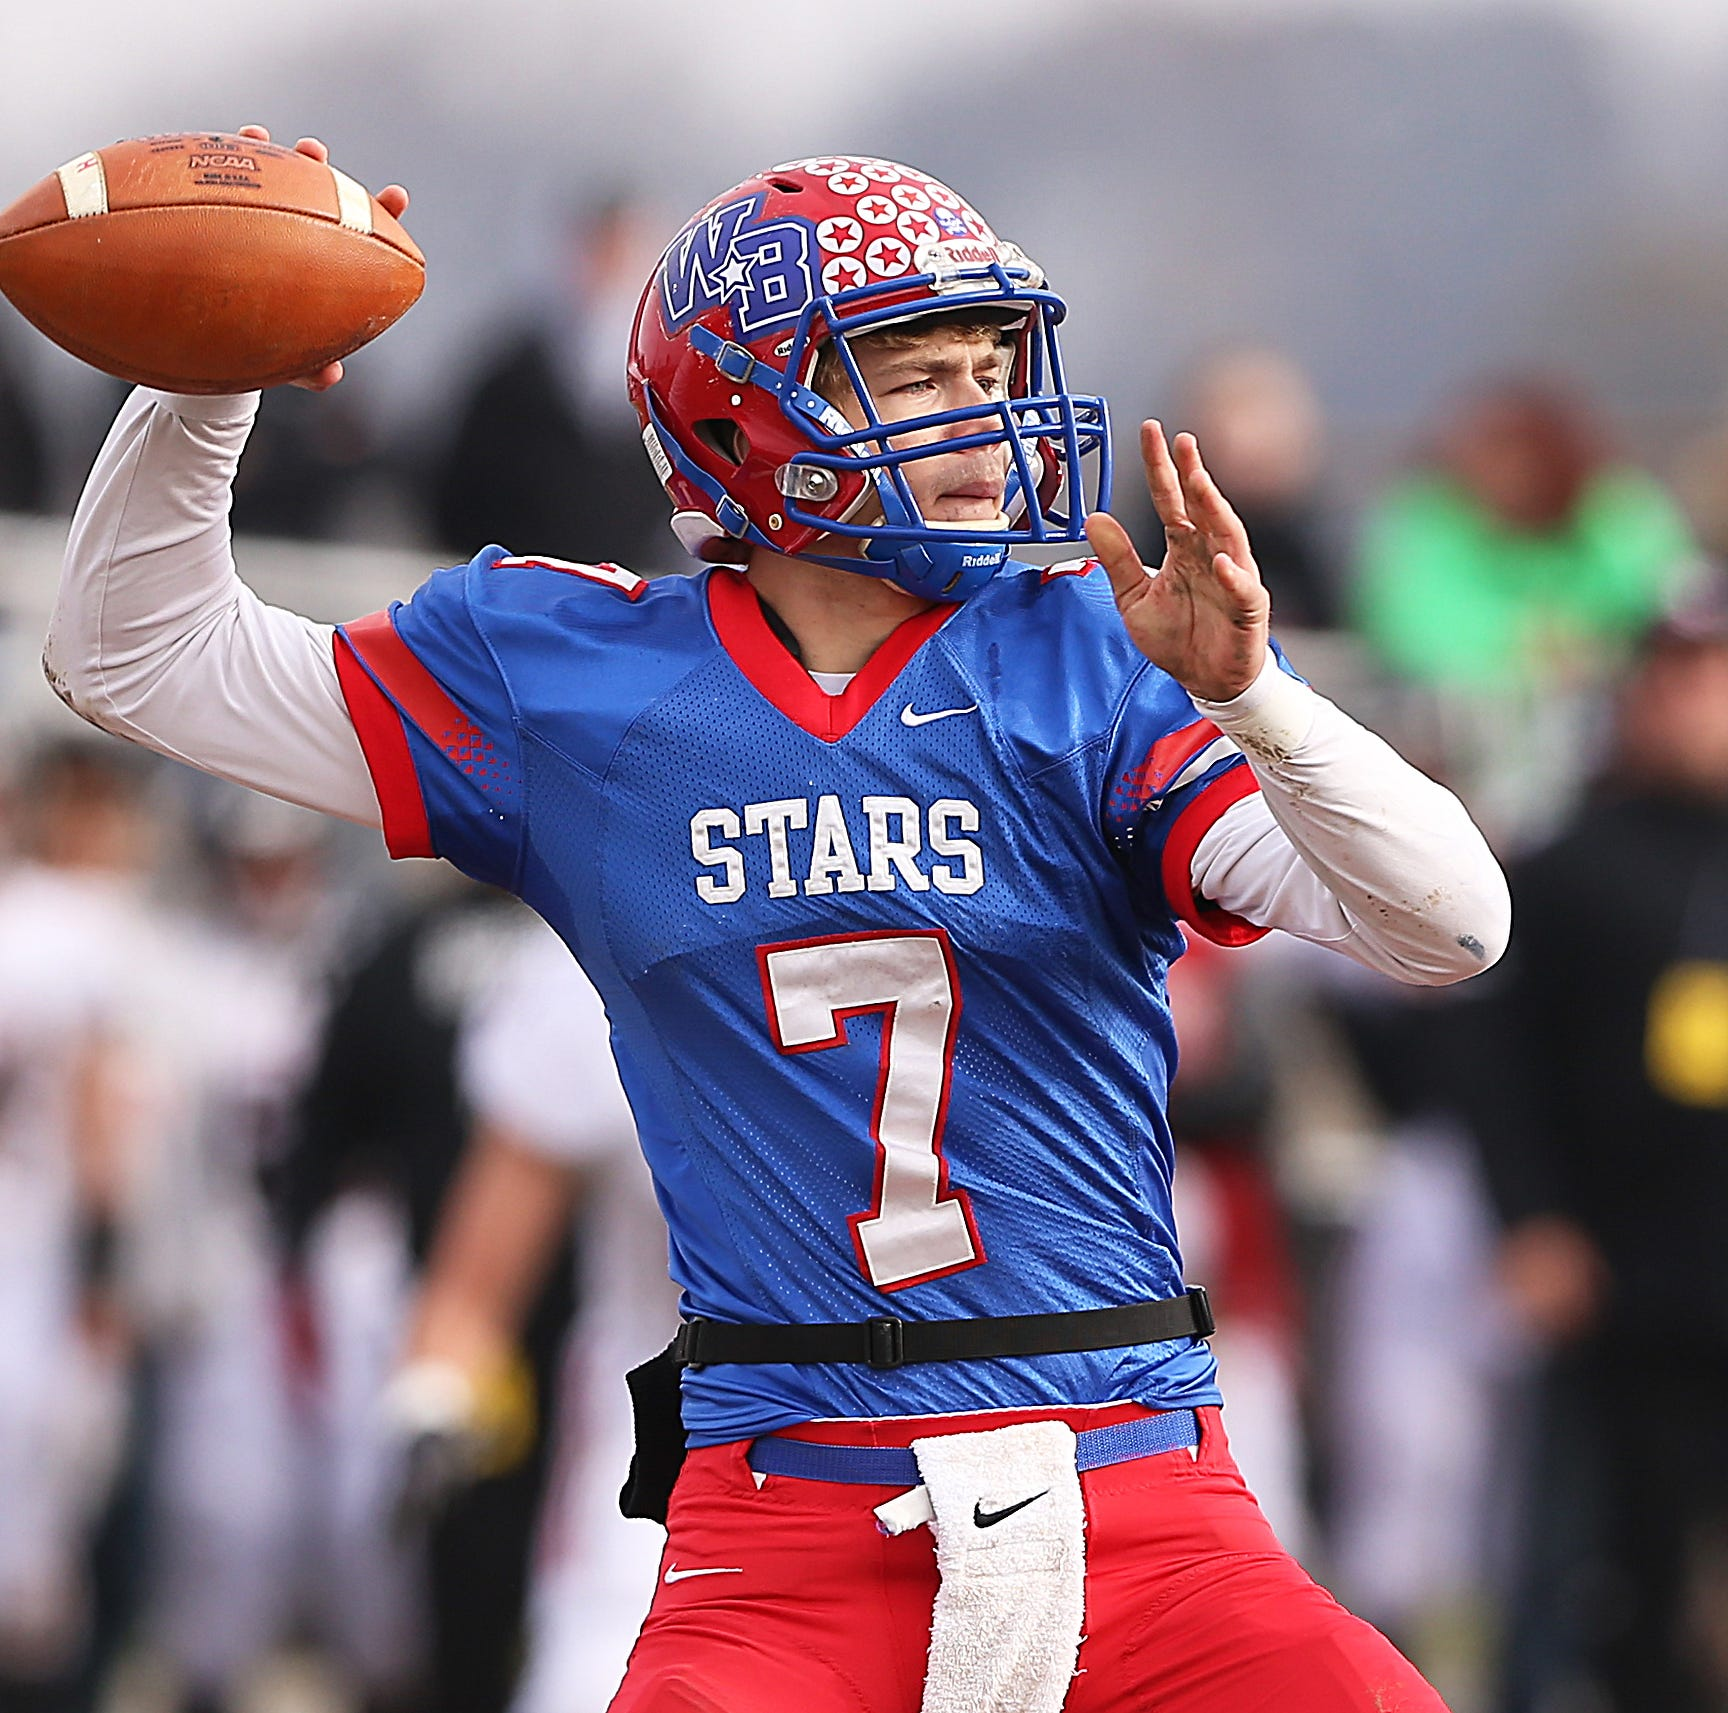 Western Boone Star Spencer Wright (7) looks to throw the ball against the Southridge Raiders in the first half of the IHSAA Class 2A semi-state final game at Western Boone High School in Thorntown, Ind., Saturday, Nov. 17, 2018. Western Boone defeated Southridge 48-7.